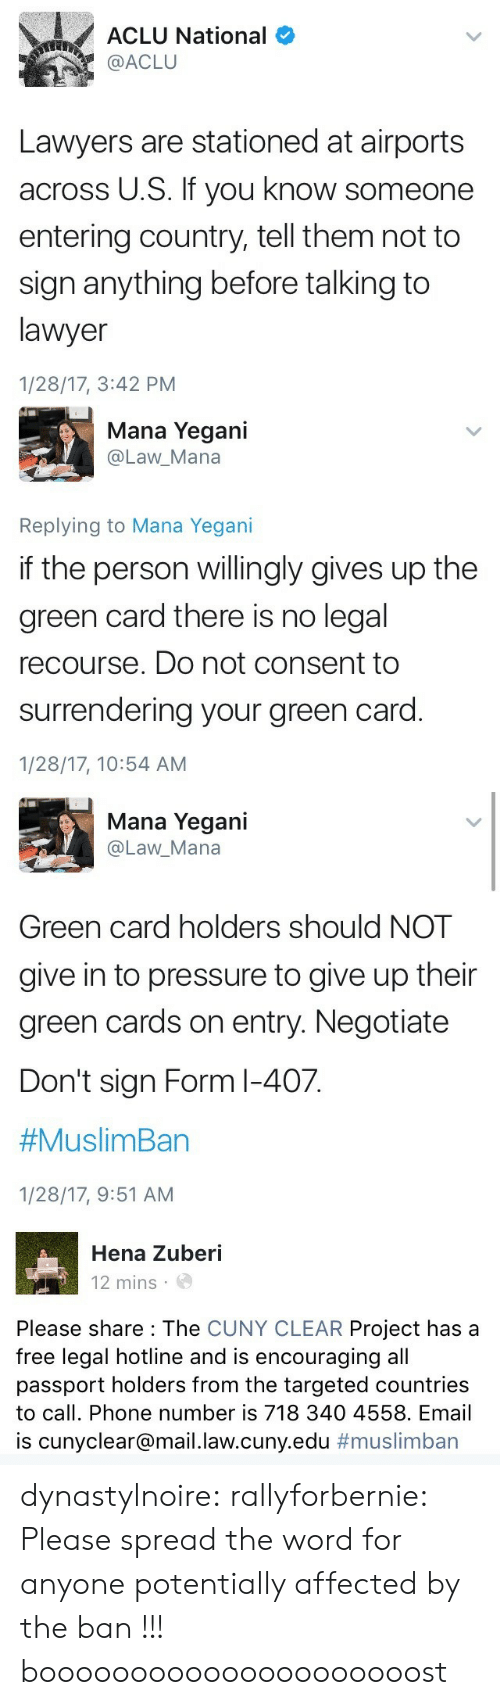 Lawyer, Muslim, and Phone: ACLU National  @ACLU  Lawyers are stationed at airports  across U.S. If you know someone  entering country, tell them not to  sign anything before talking to  lawyer  1/28/17, 3:42 PM   Mana Yegani  @Law_Mana  Replying to Mana Yegani  if the person willingly gives up the  green card there is no legal  recourse. Do not consent to  surrendering your green card  1/28/17, 10:54 AM   Mana Yegani  @Law_Mana  Green card holders should NOT  give in to pressure to give up their  green cards on entry. Negotiatee  Don't sign Form l-407.  #Muslim Ban  1/28/17, 9:51 AM   Hena Zuberi  12 mins  Please share : The CUNY CLEAR Project has a  free legal hotline and is encouraging all  passport holders from the targeted countries  to call. Phone number is 718 340 4558. Email  is cunyclear@mail.law.cuny.edu dynastylnoire:  rallyforbernie: Please spread the word for anyone potentially affected by the ban !!! booooooooooooooooooooost